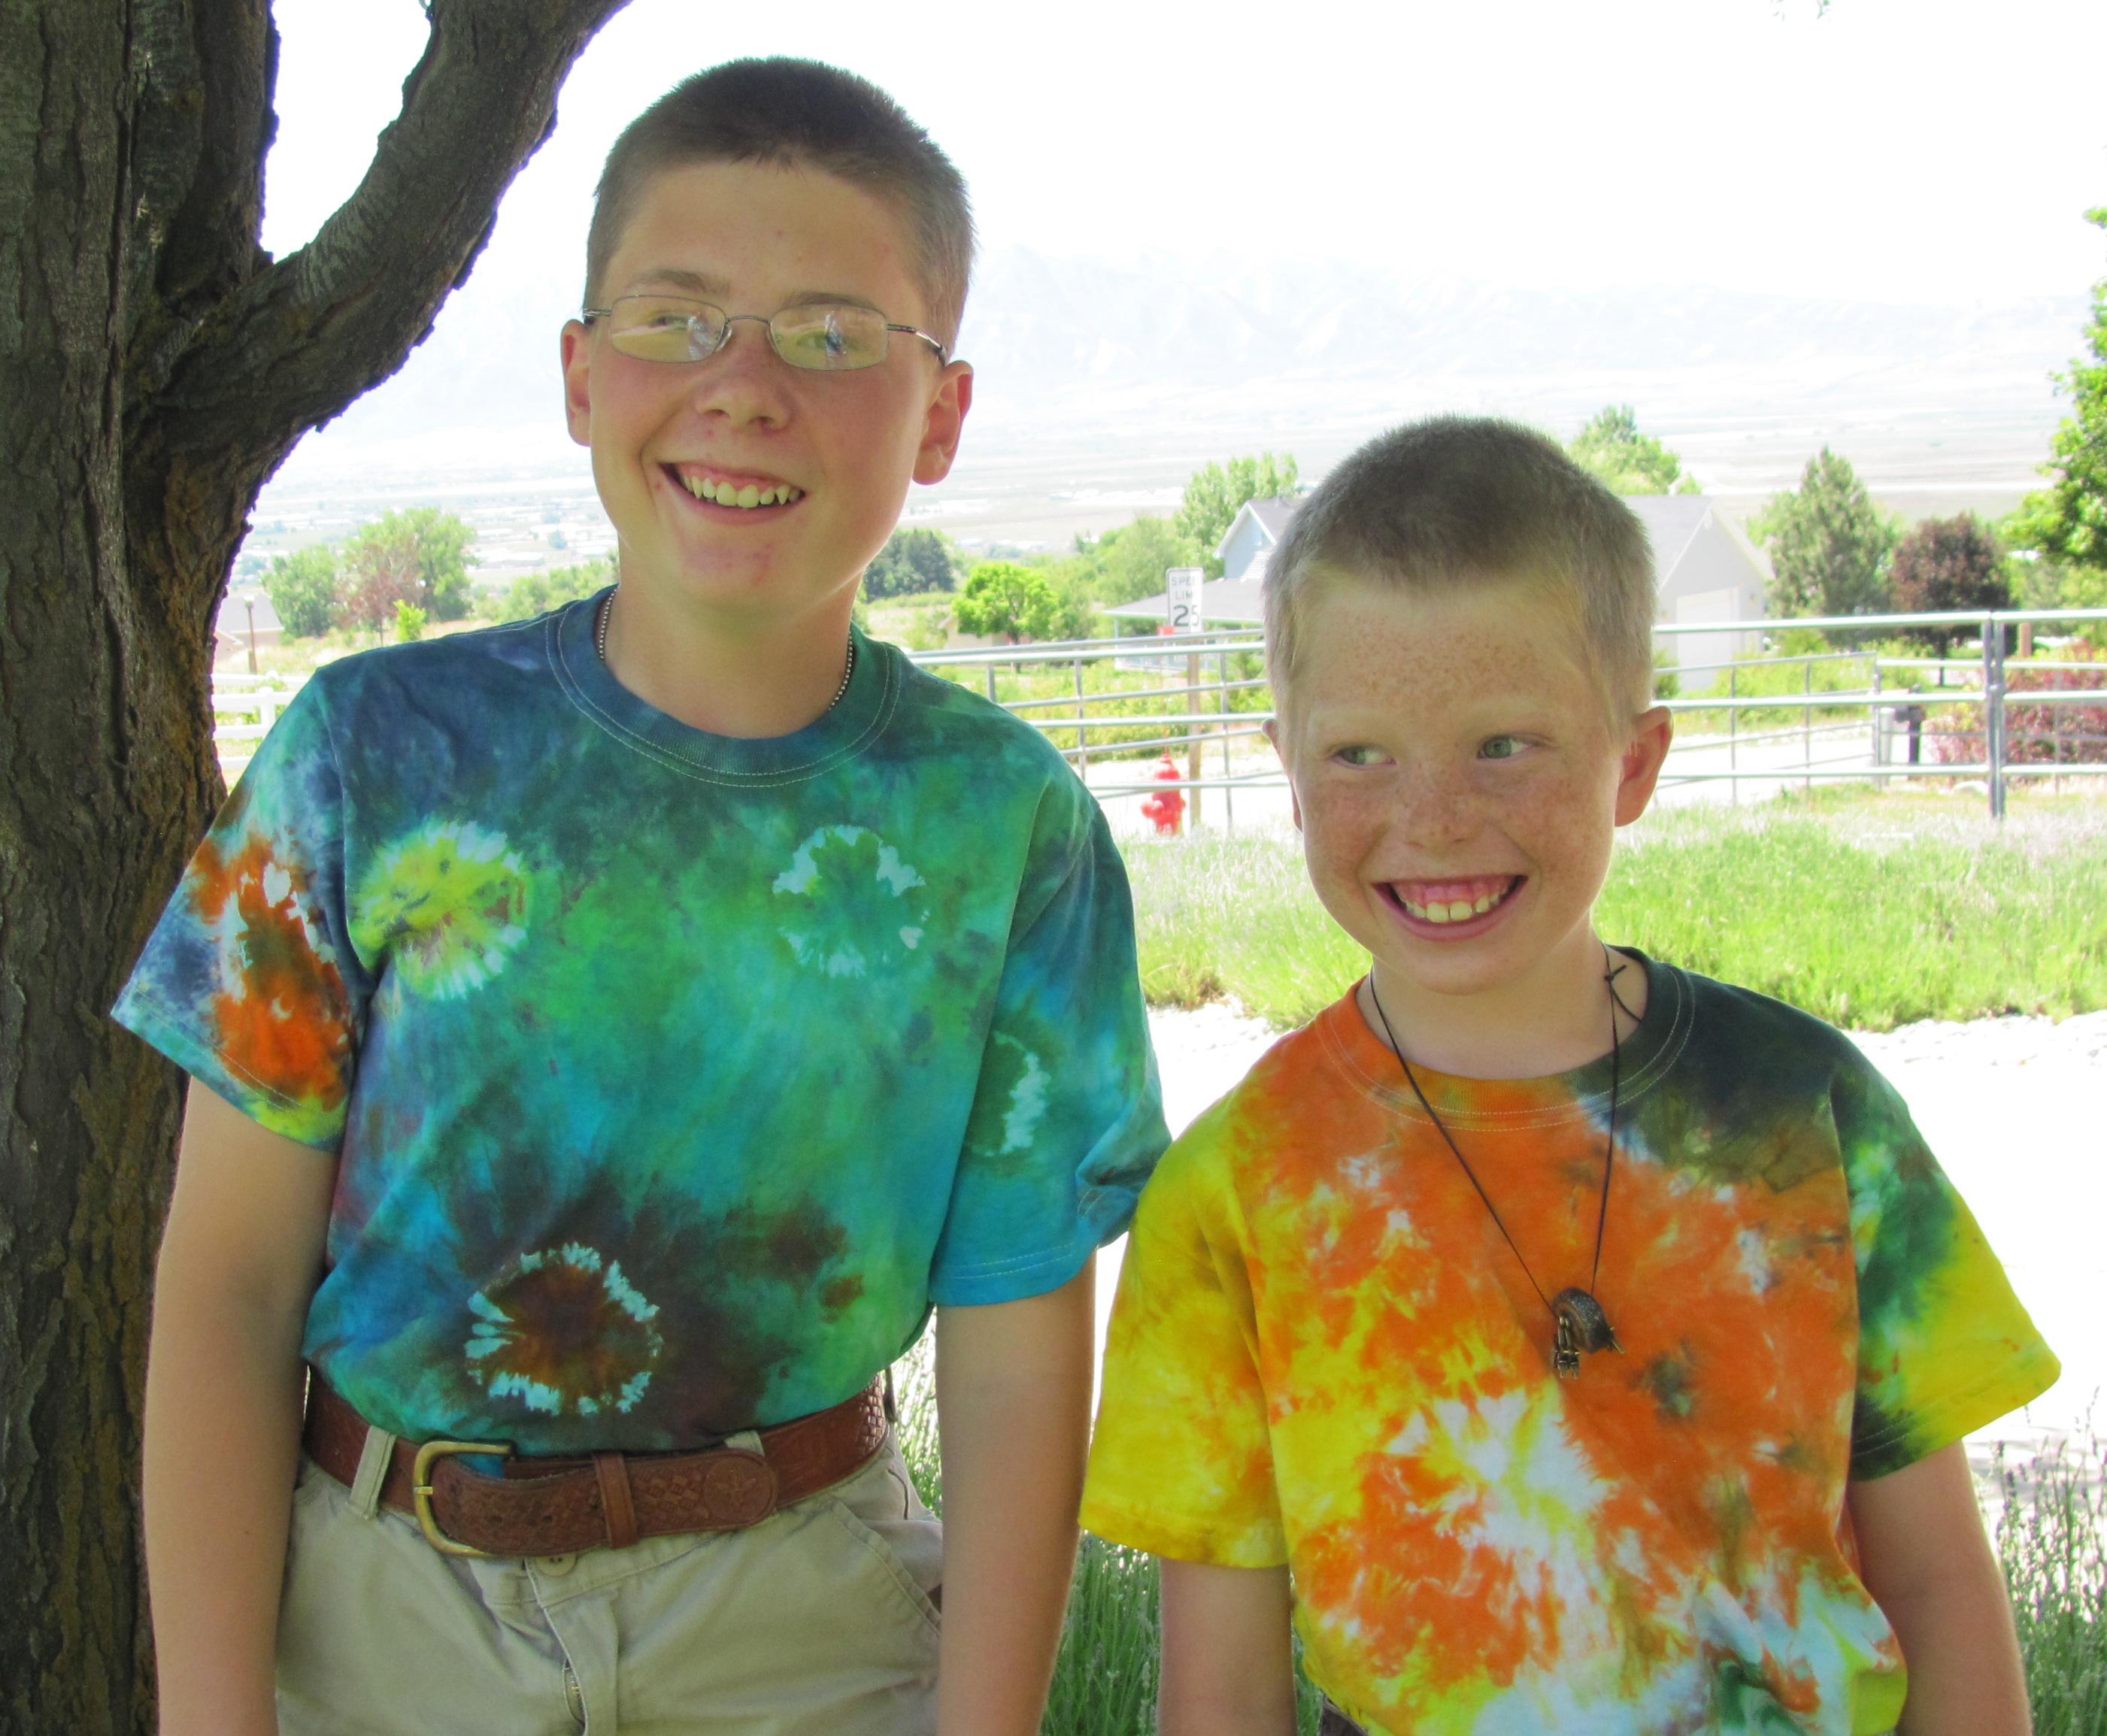 Tie-dye Day at Camp Hobe